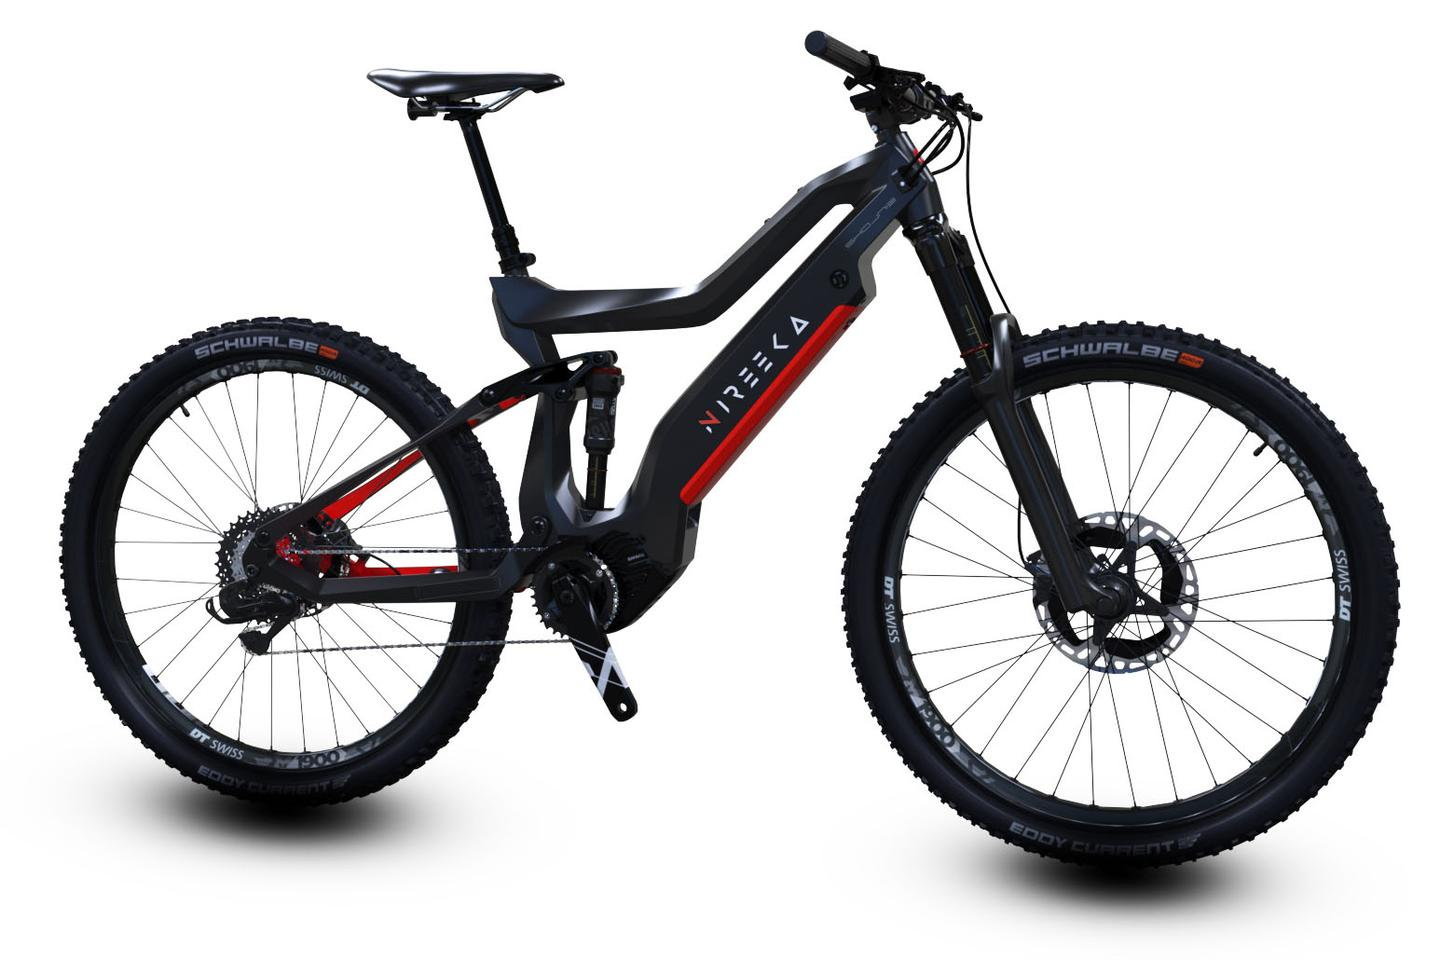 The Nireeka Nyx becomes the flagship of the range, a high-spec carbon-framed enduro off-road ebike